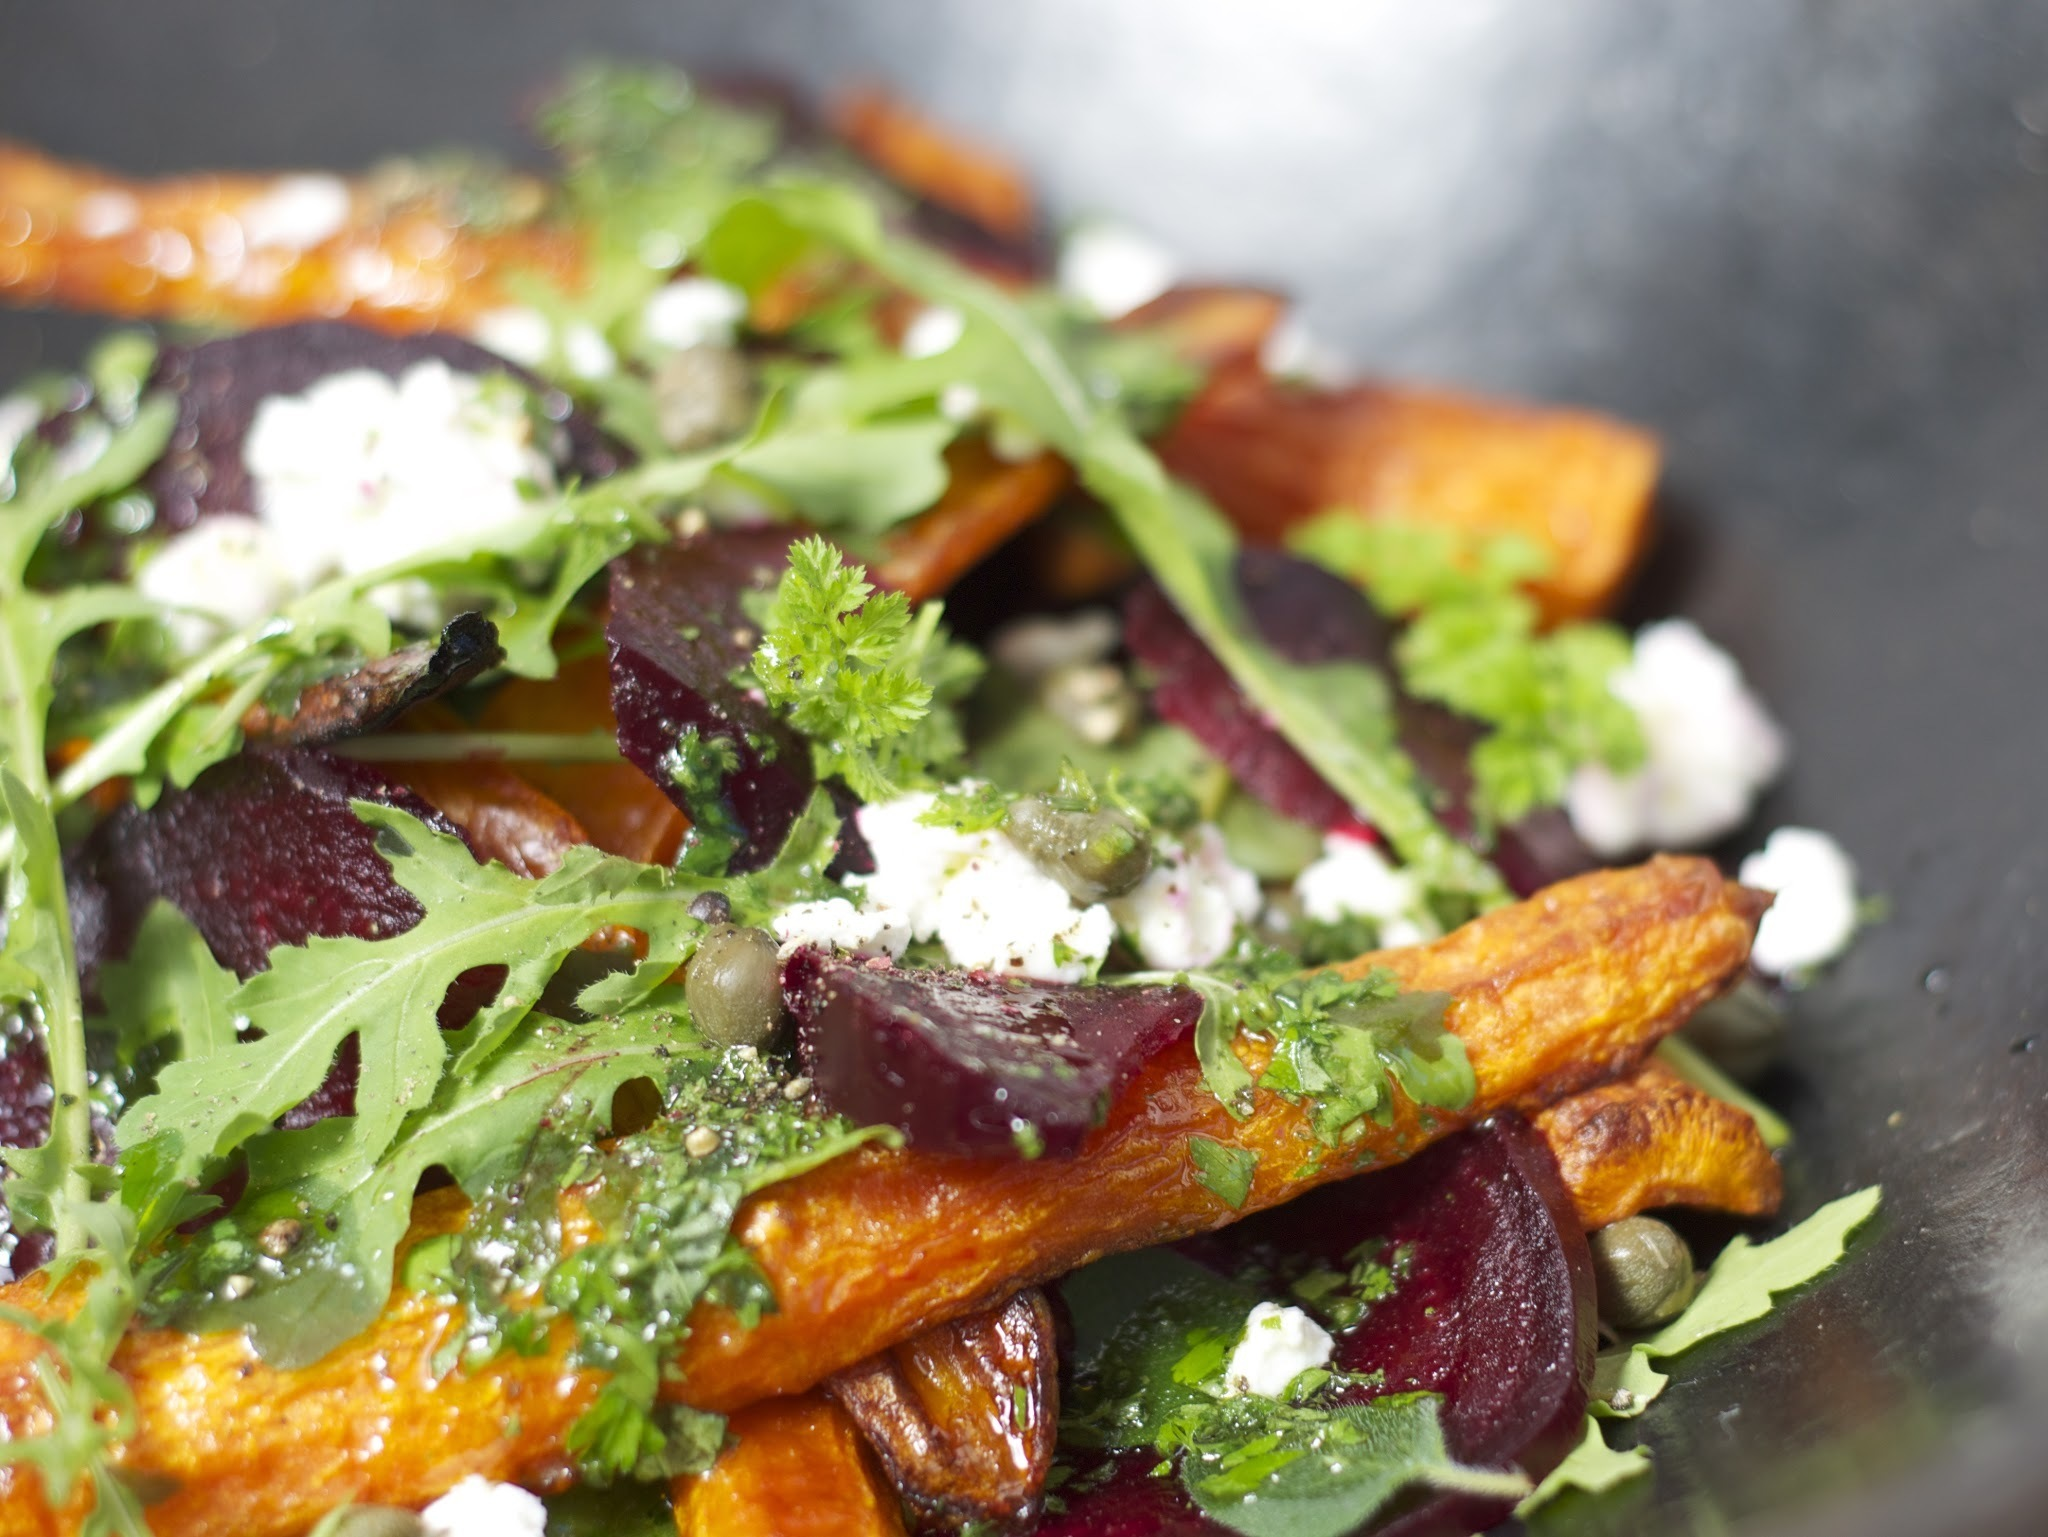 roasted carrot and beetroot salad with herb dressing